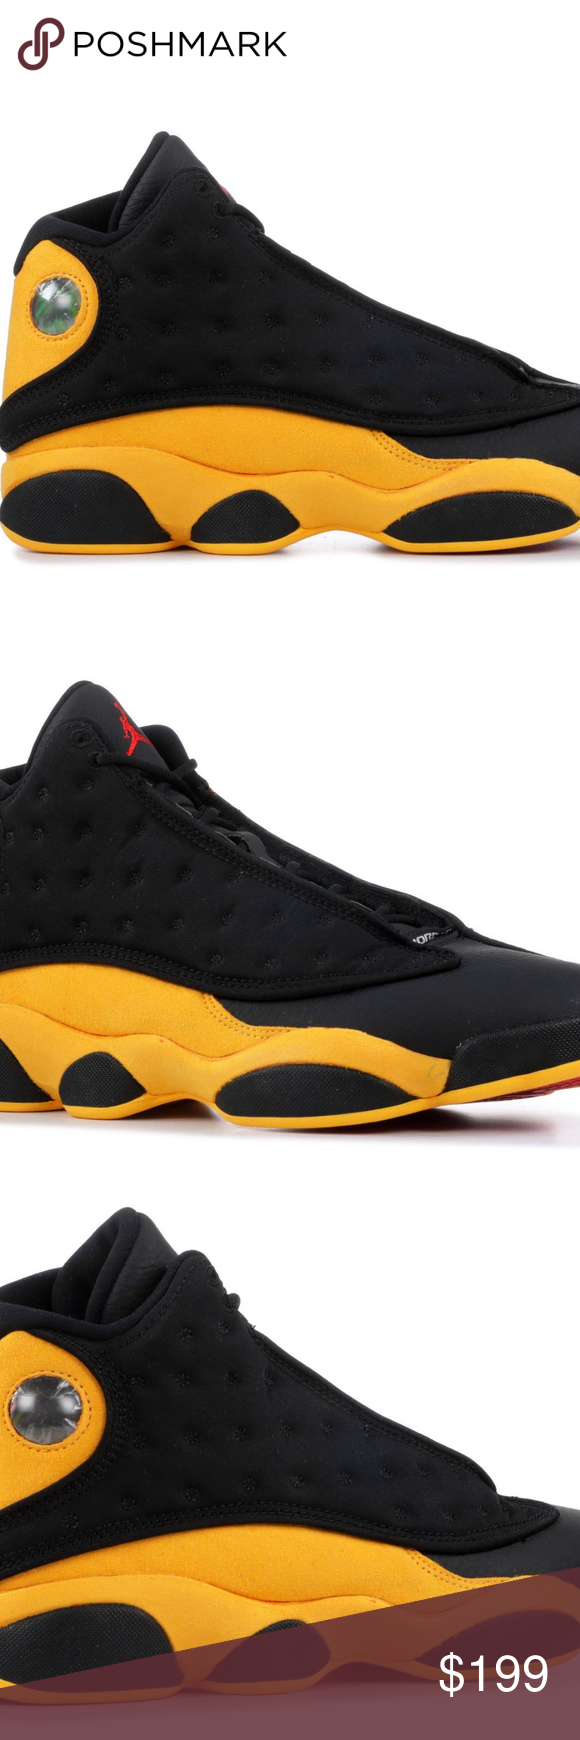 size 40 a67eb 372c5 Nike Air Jordan 13 XIII Retro Melo Black Yellow 10 Brand New ...